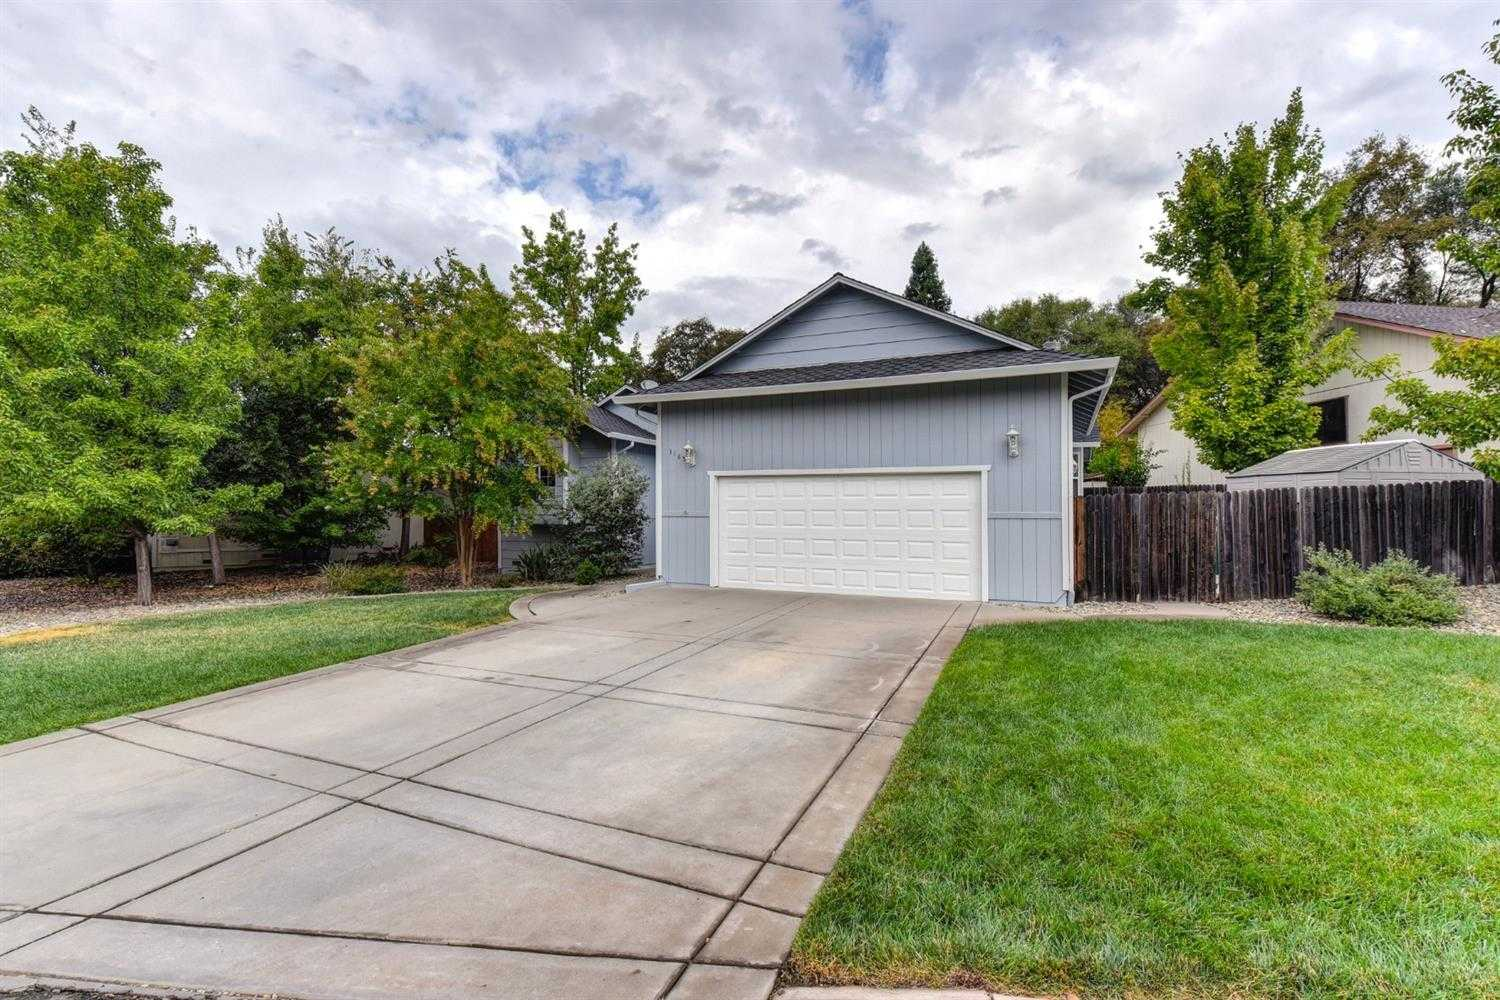 $489,900 - 3Br/2Ba -  for Sale in Cameron Park